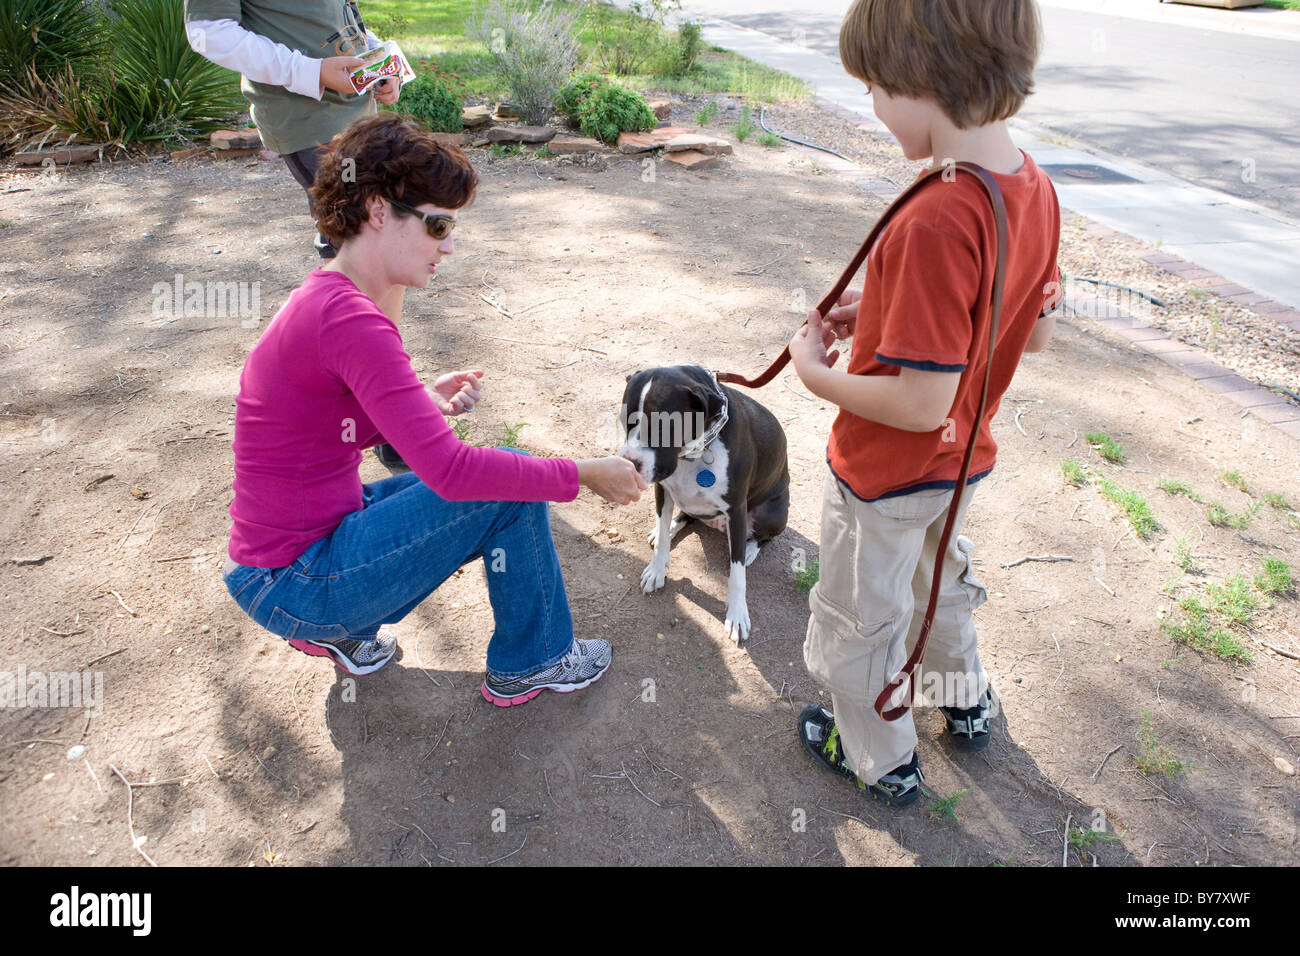 Dog trainer working with eight year old boy on how to train his dog to sit, stay, and walk without pulling on leash. - Stock Image